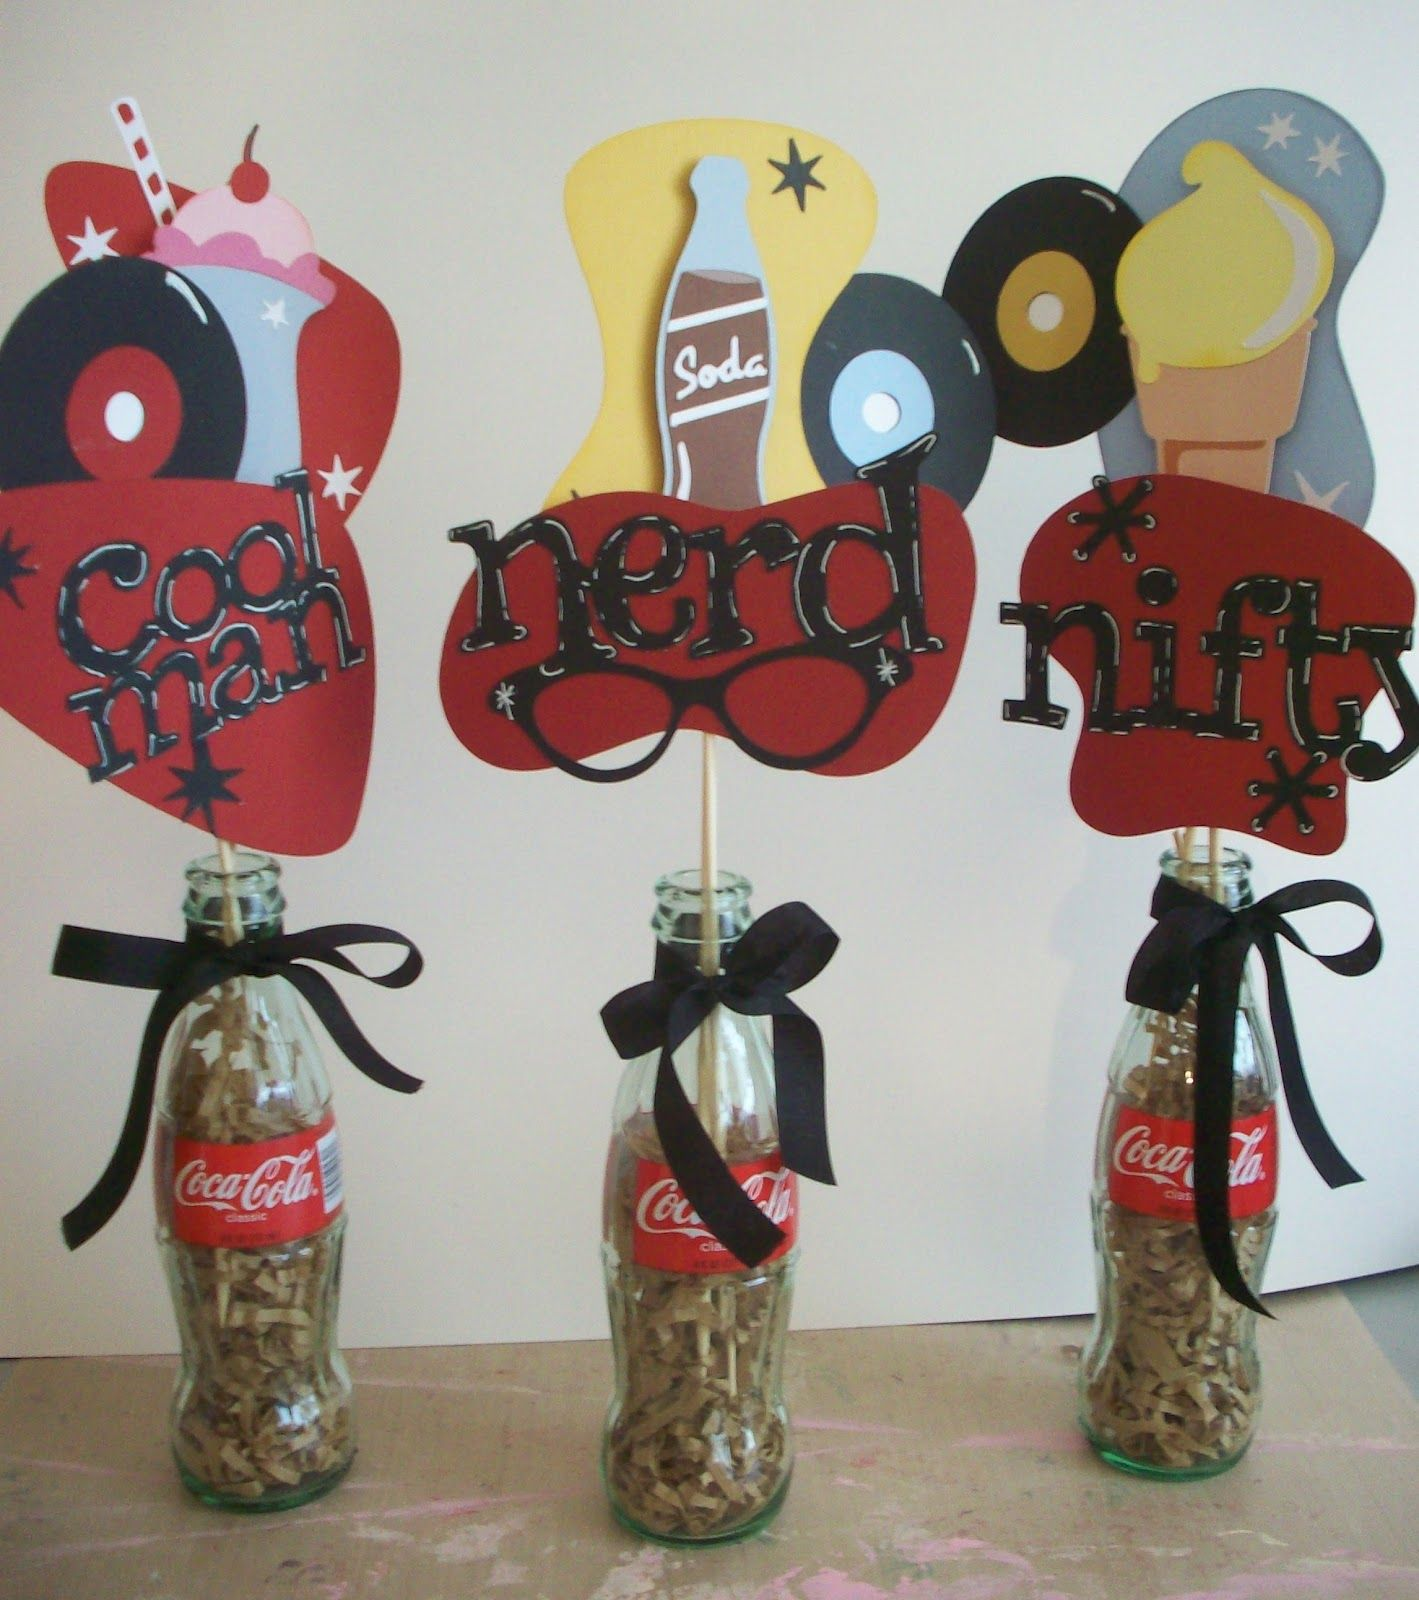 Fifties Table Centerpiece Ideas | 50s Party Centerpieces  Http://craftsinthecommandcenter.blogspot.com .